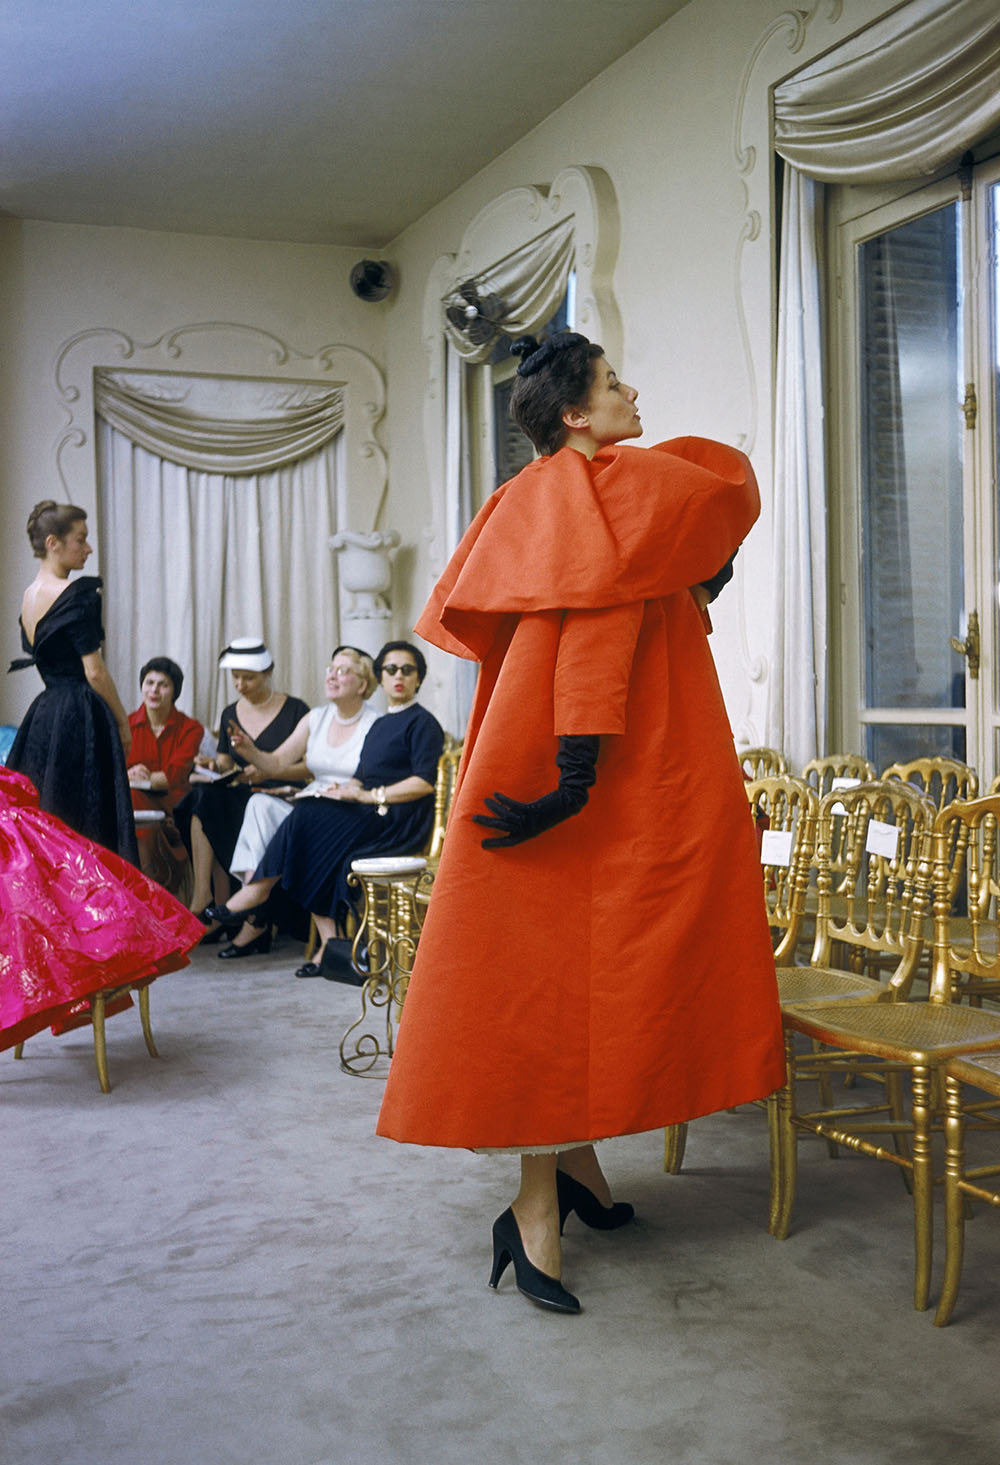 Model wearing Balenciaga orange coat as I. Magnin buyers inspect a dinner outfit in the background, Paris, France, 1954 © Mark Shaw